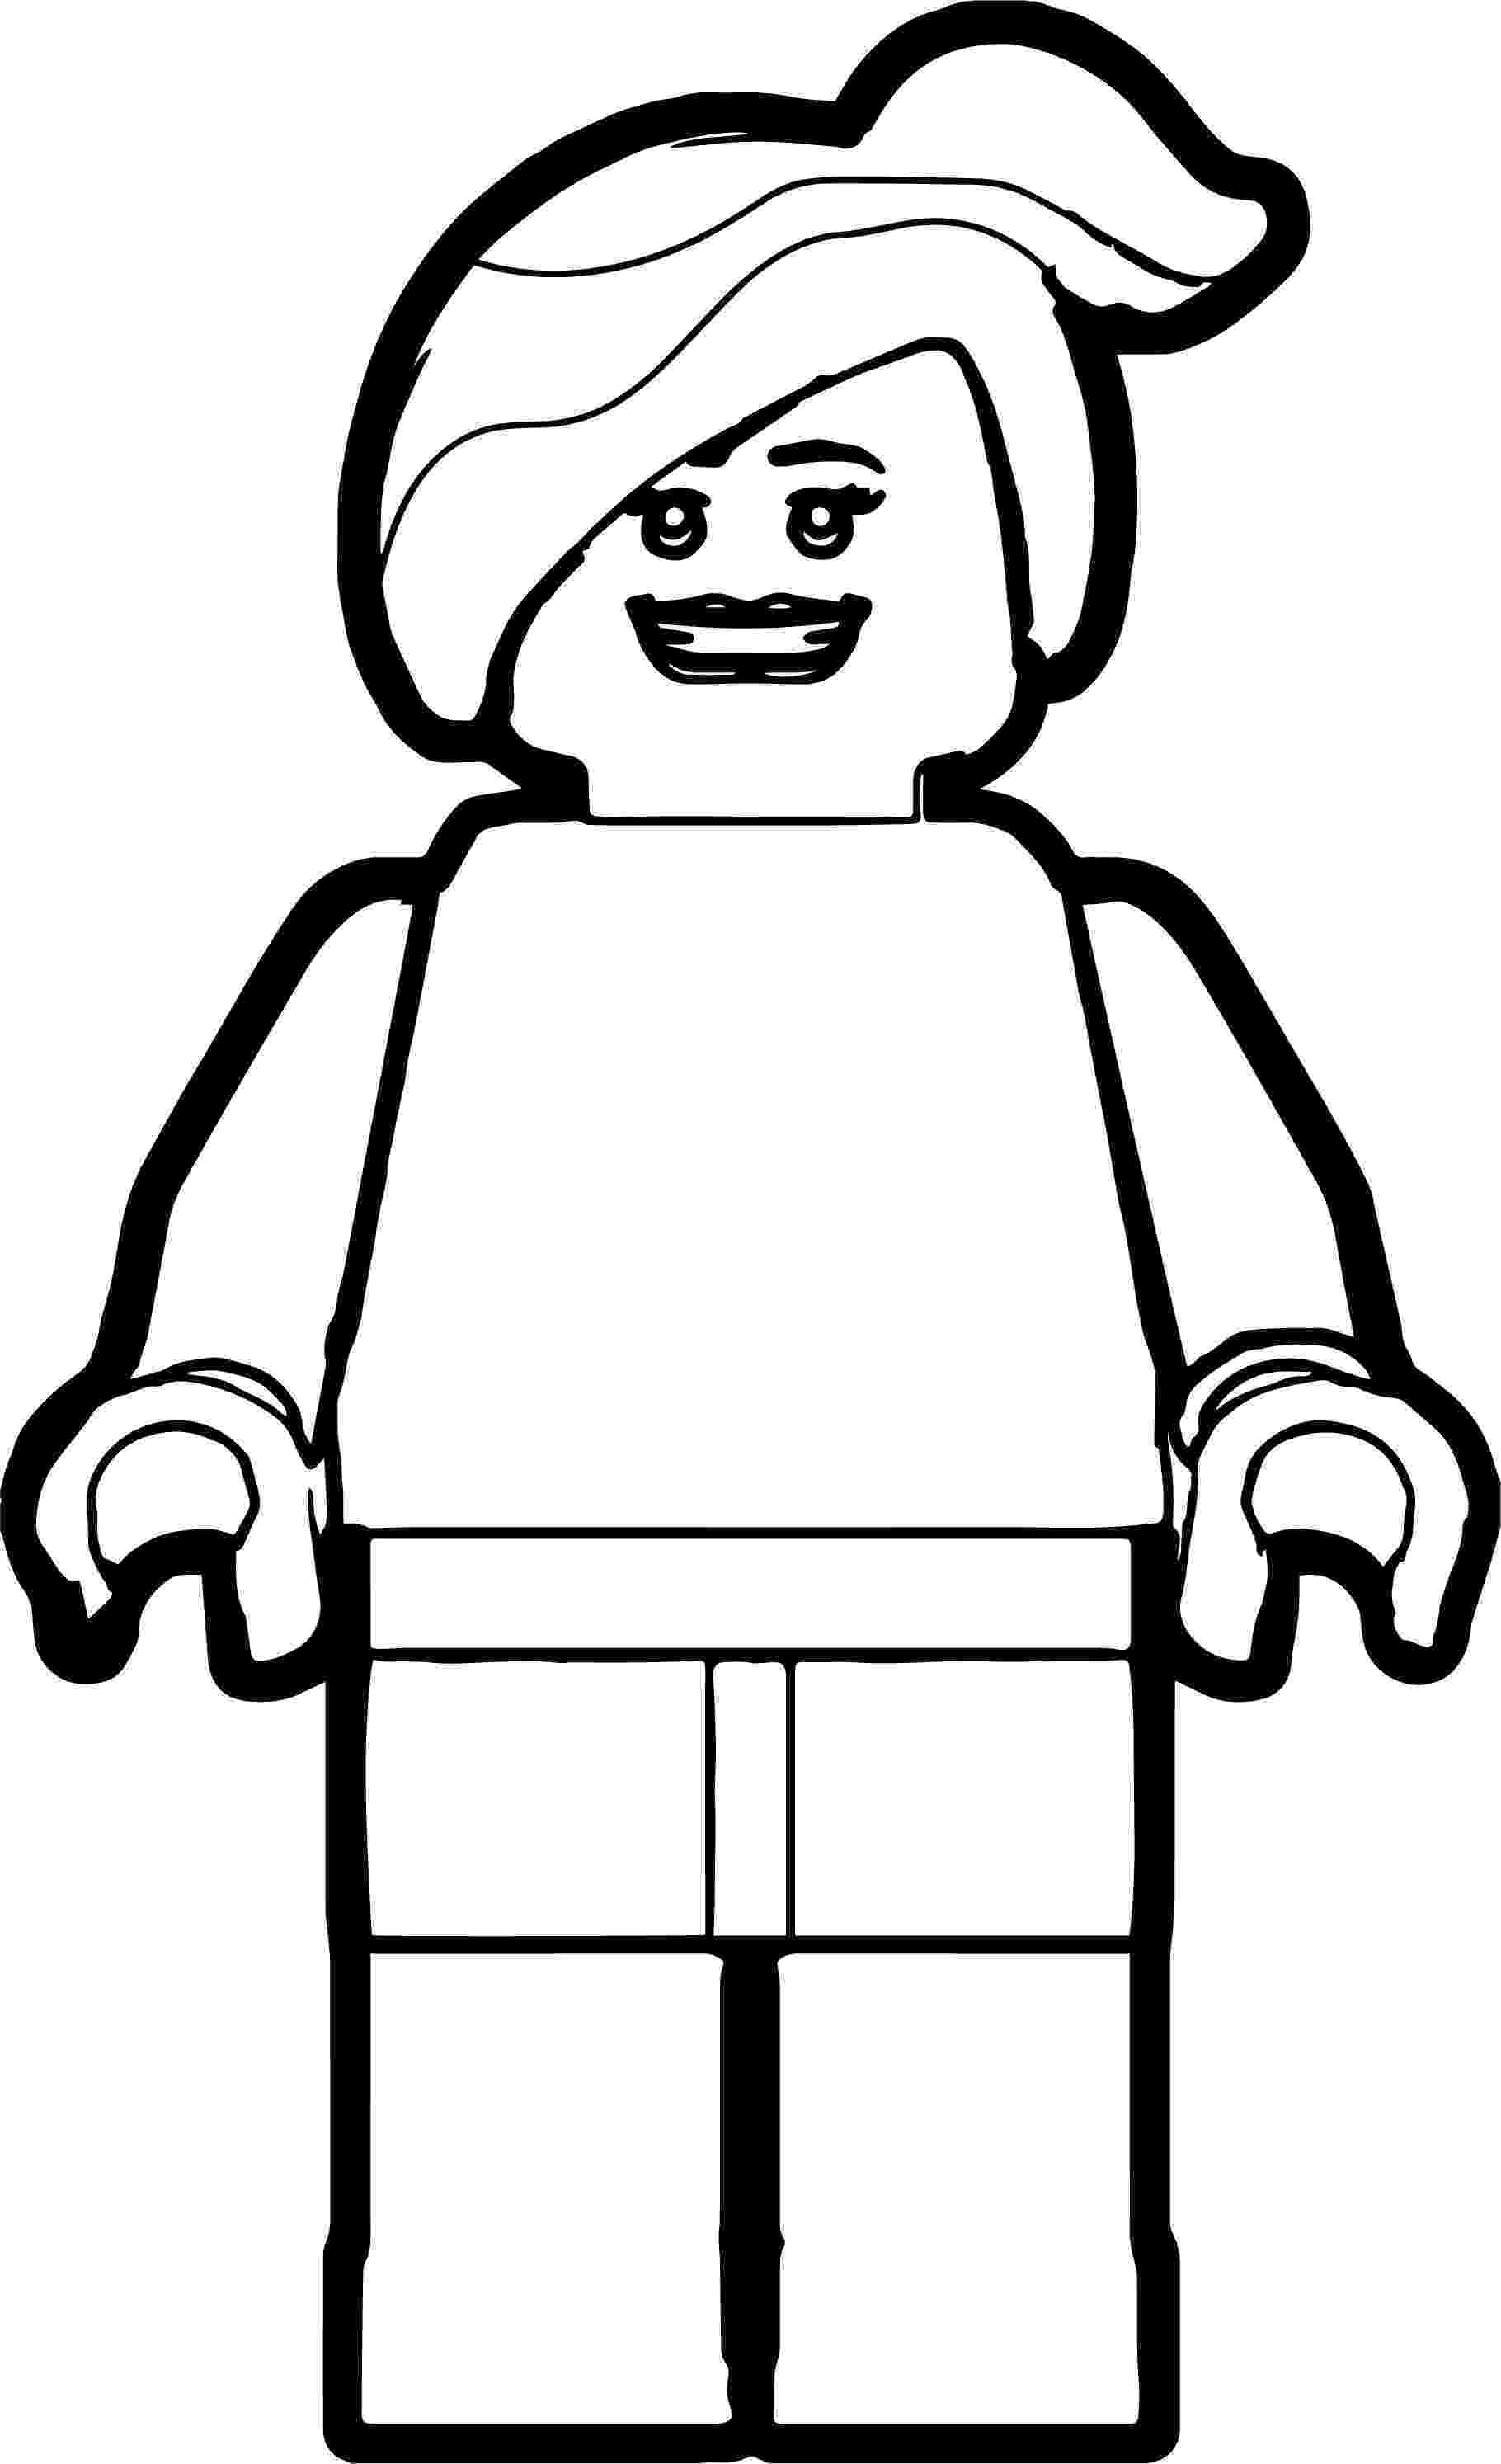 lego man coloring pages lego woman coloring page wecoloringpagecom lego man pages coloring